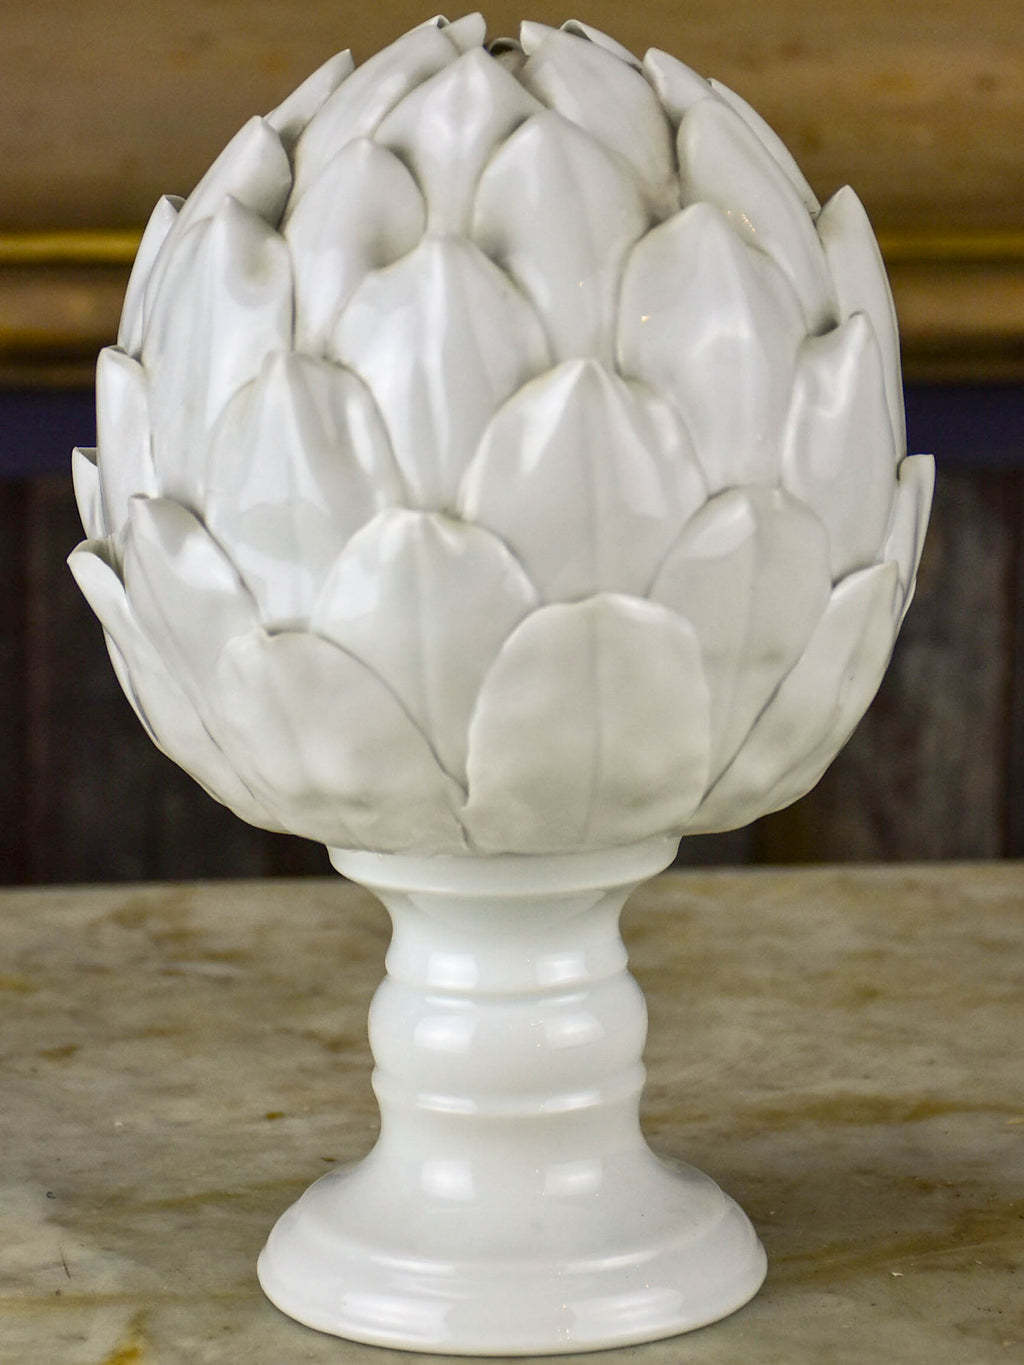 Antique earthenware artichoke sculpture